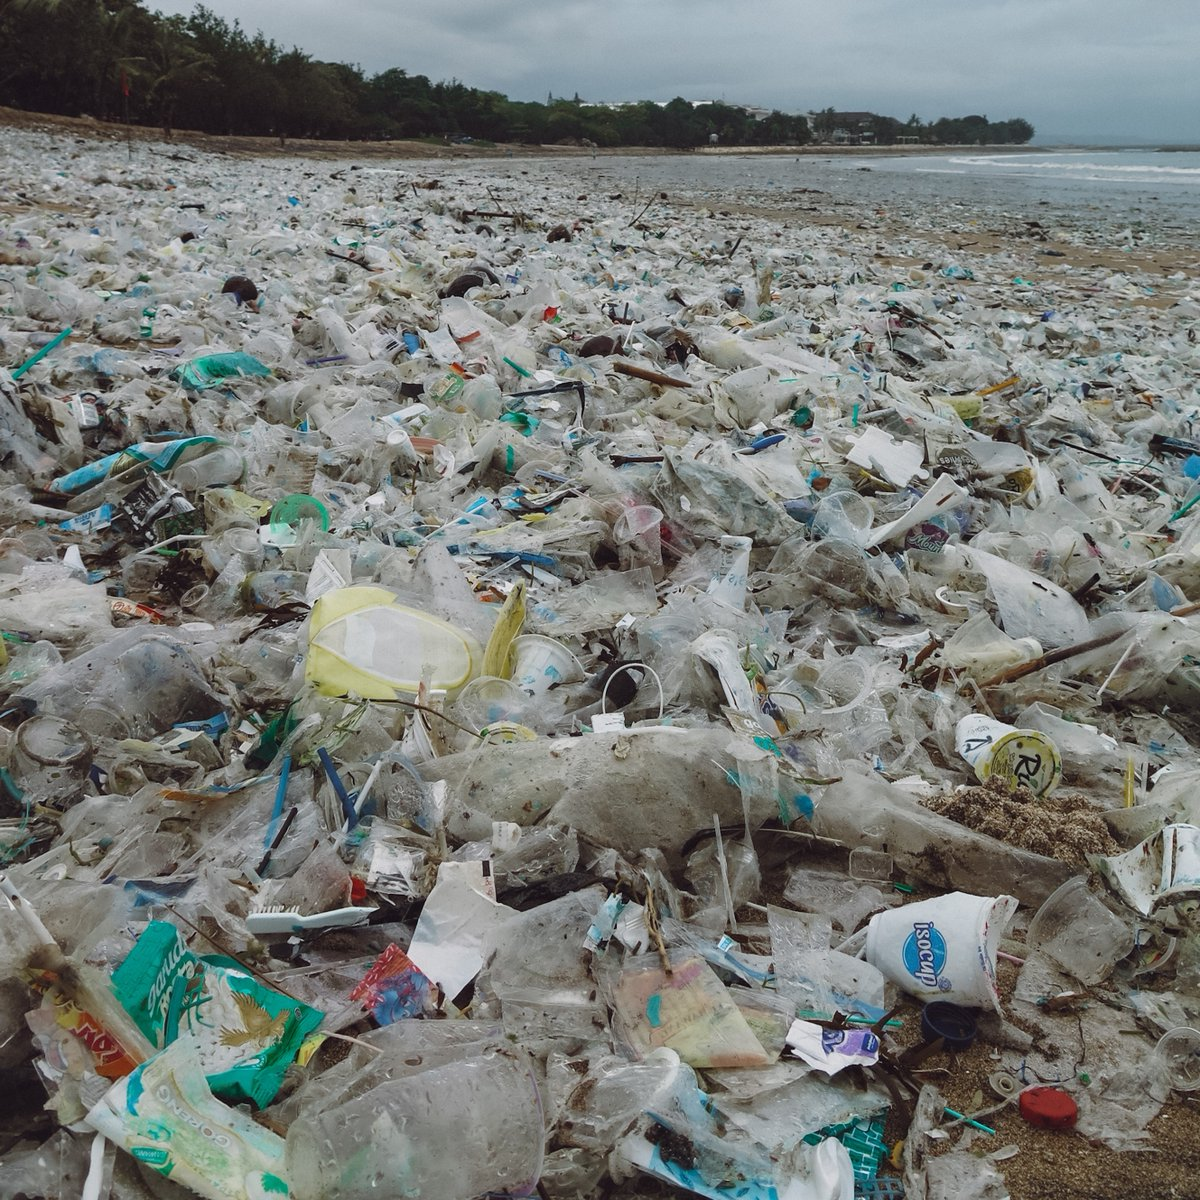 Monsoon season is part of life for our crews in Bali, but the amount of plastic that washes up on this tropical paradise gets worse every year.   In just two days, our crews recovered nearly 8,000 lbs of trash from Kuta Beach, most of which was single-use plastic bottles & cups.